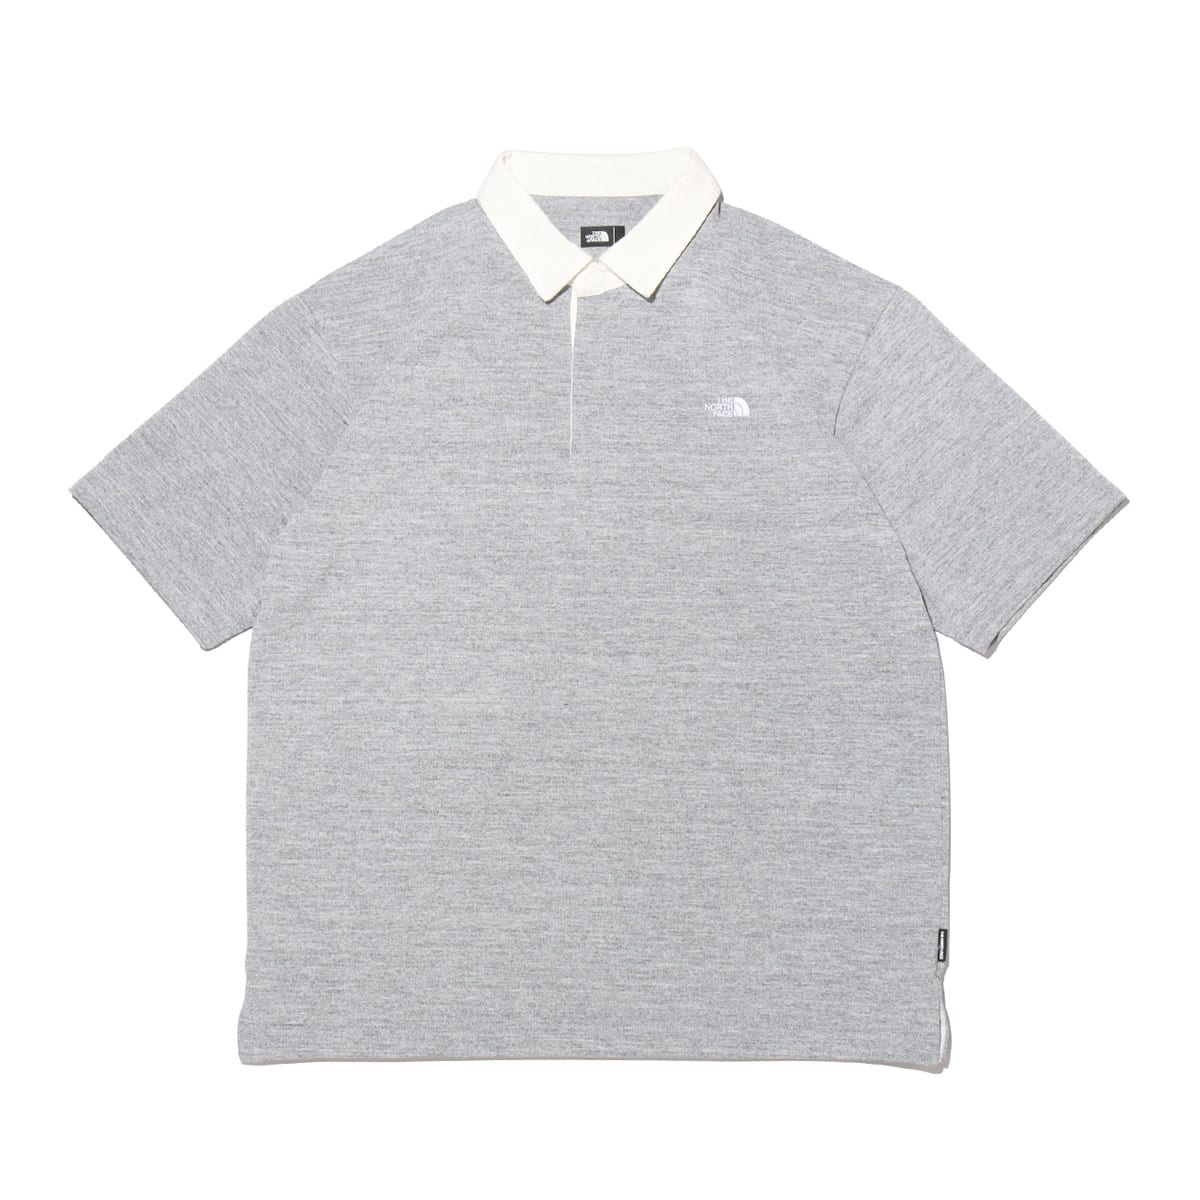 THE NORTH FACE S/S RUGBY POLO MIX GRAY 21SS-I_photo_large